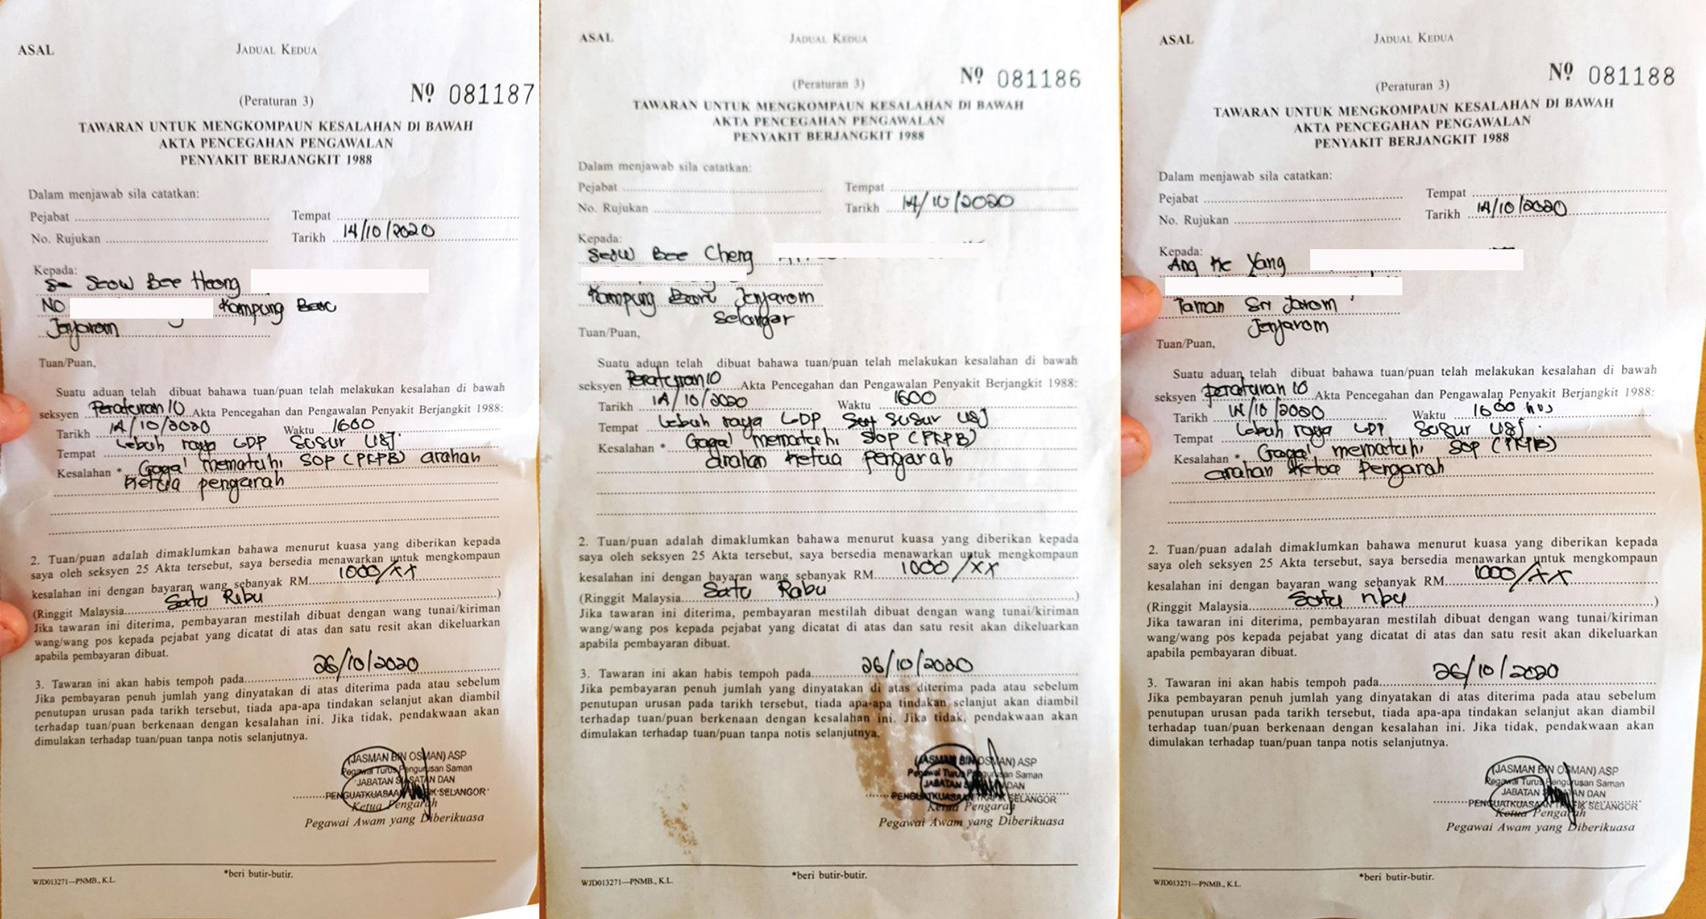 The three compounds issued to Seow Boon Keong.